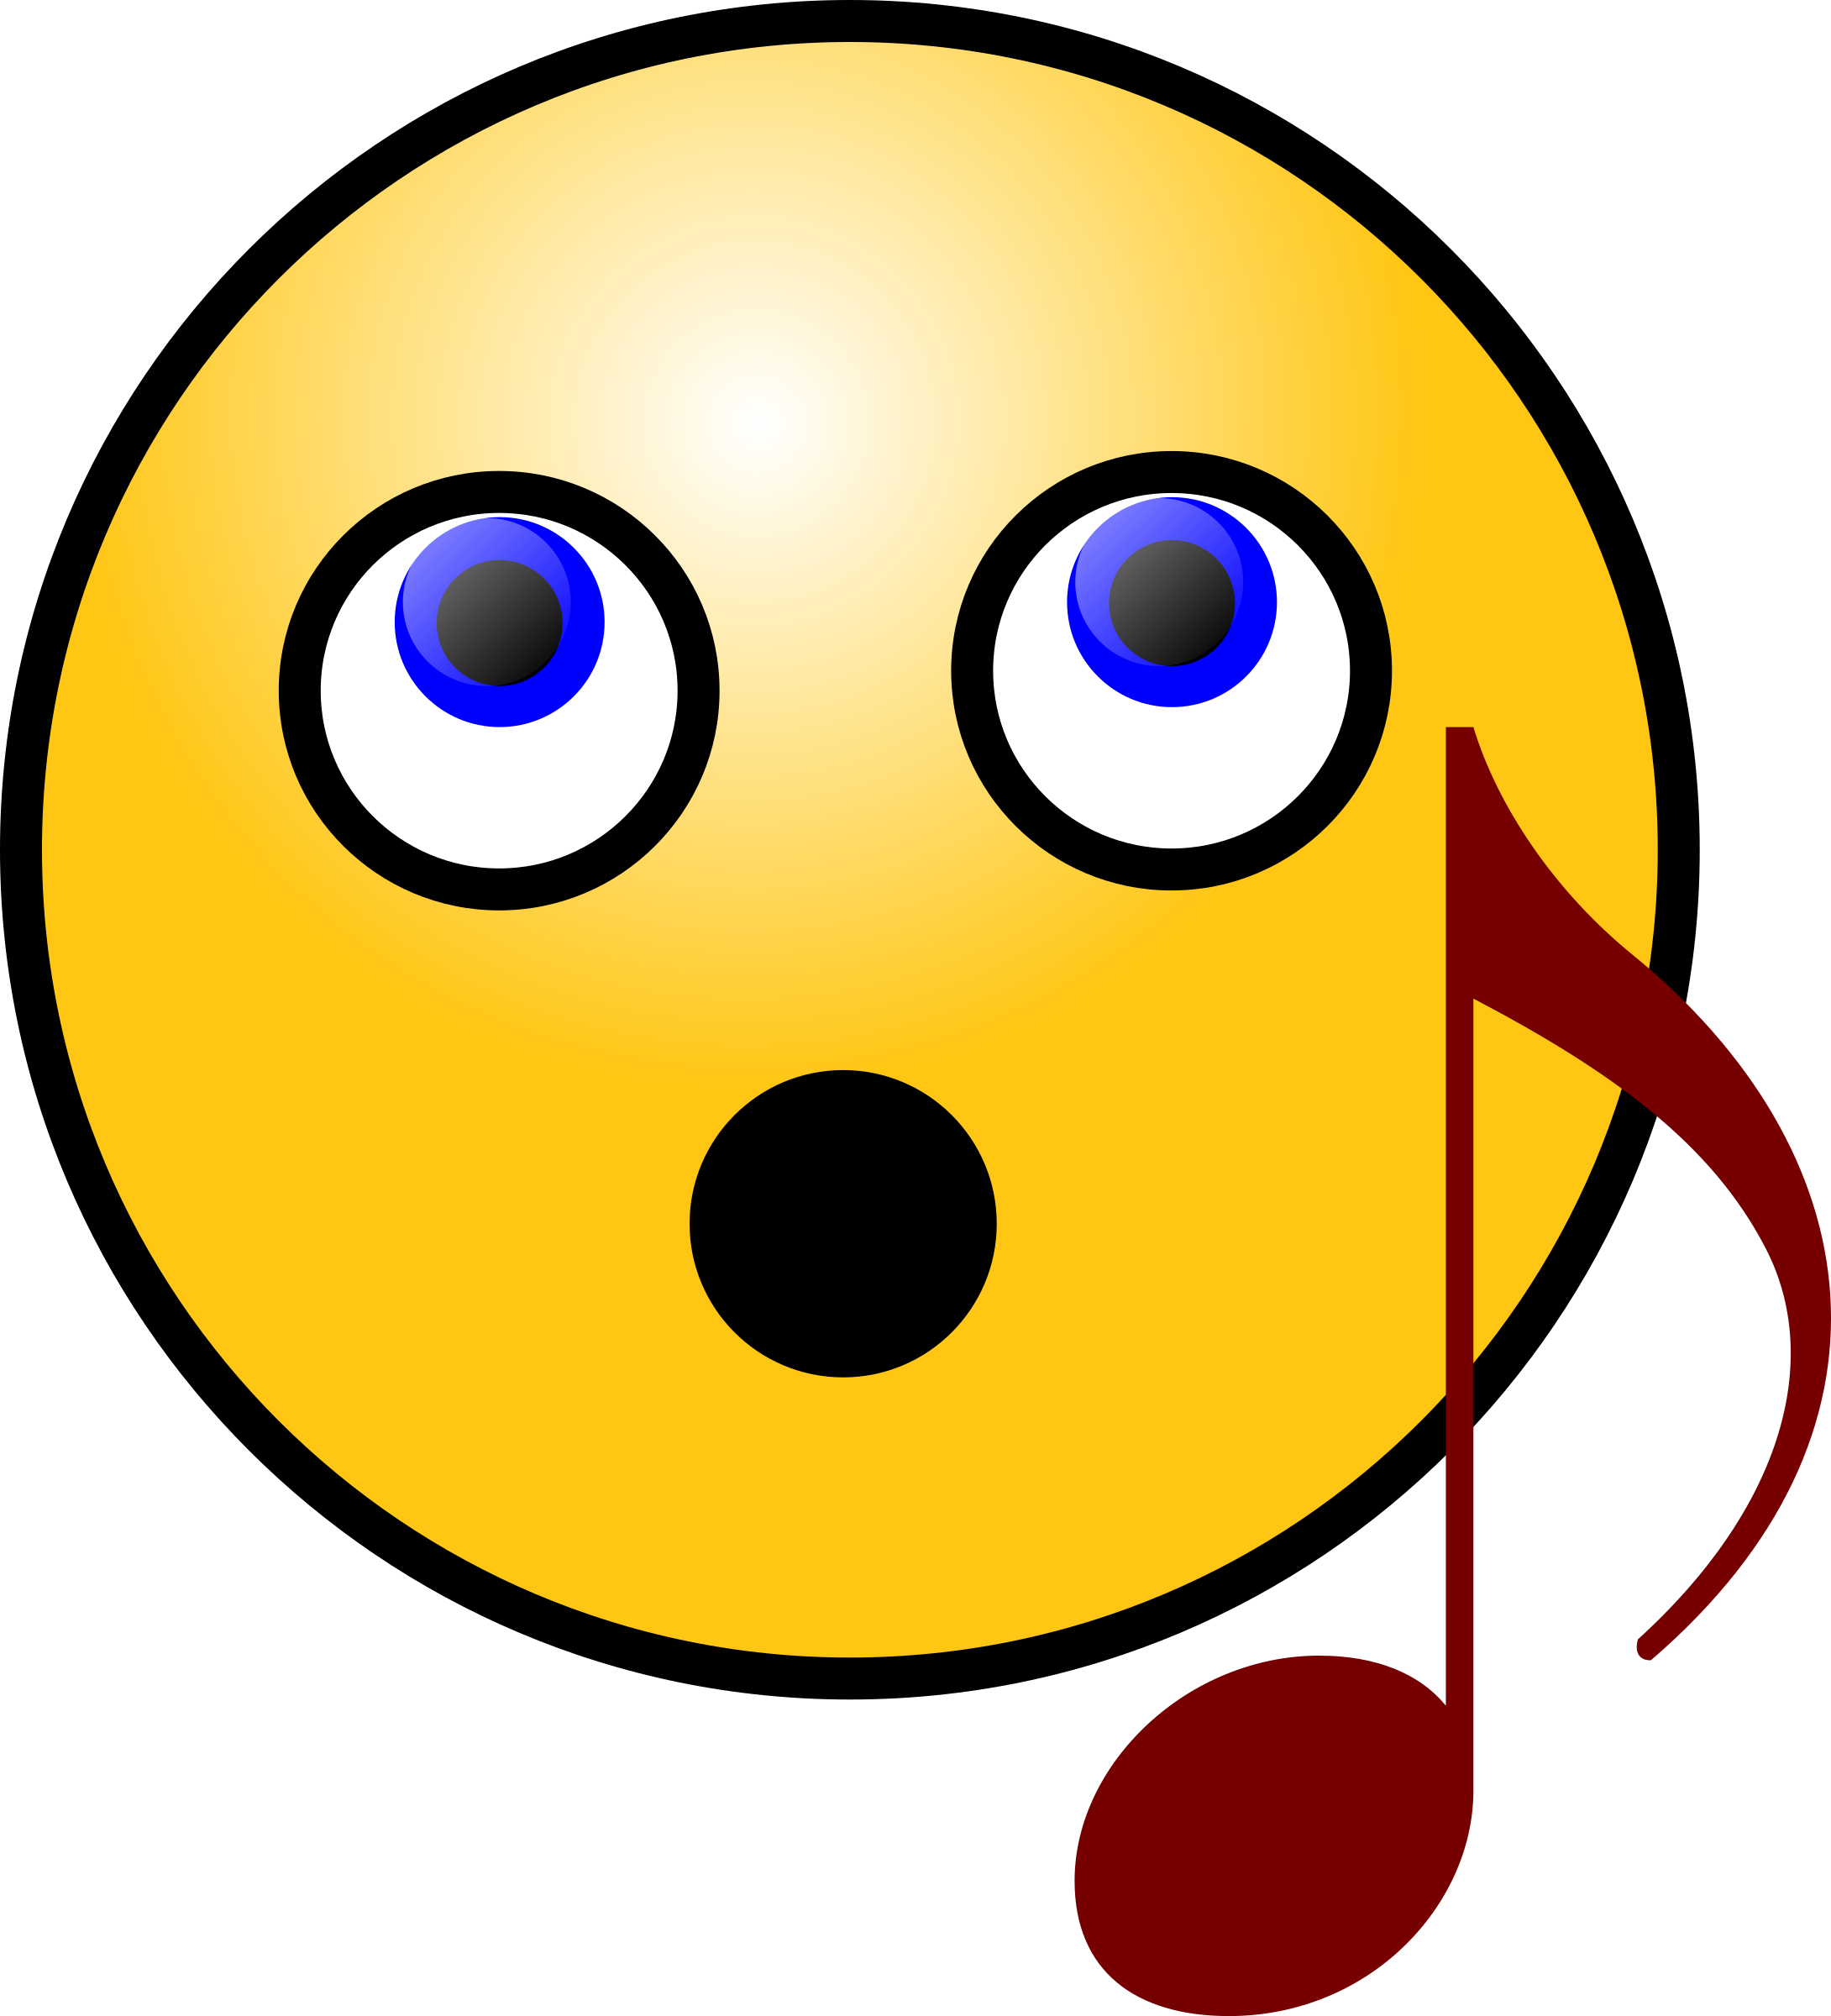 Singing smiley big image. Headphone clipart face